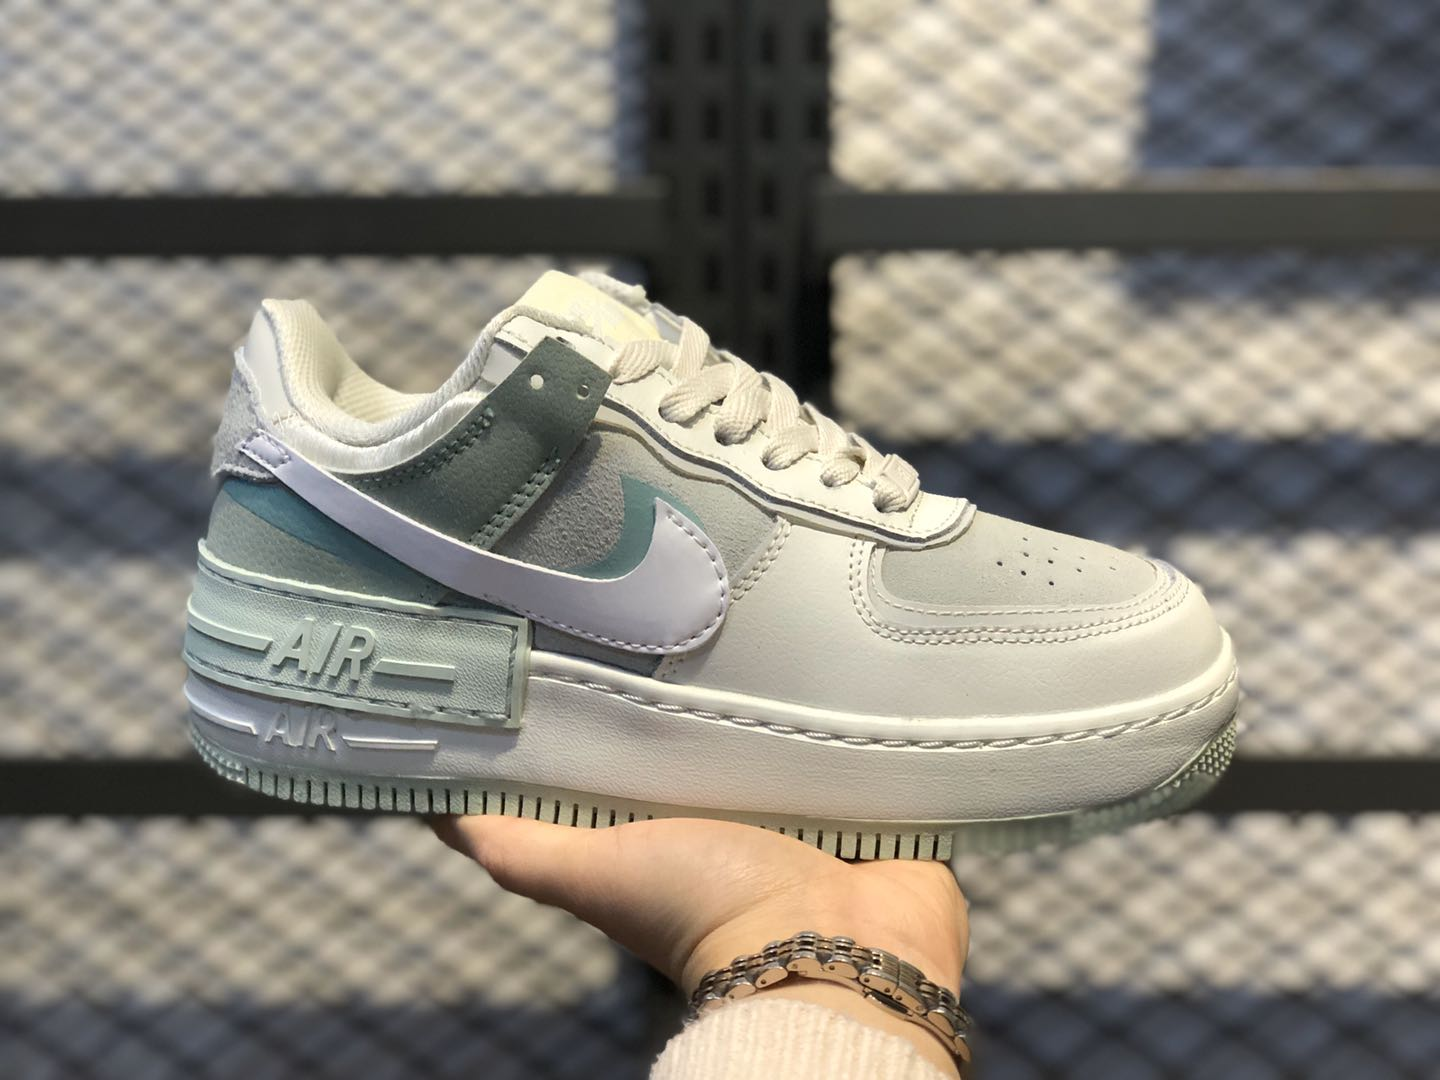 Nike Air Force 1 Shadow Spruce Aura/White-Pistachio-Frost CW2655-001